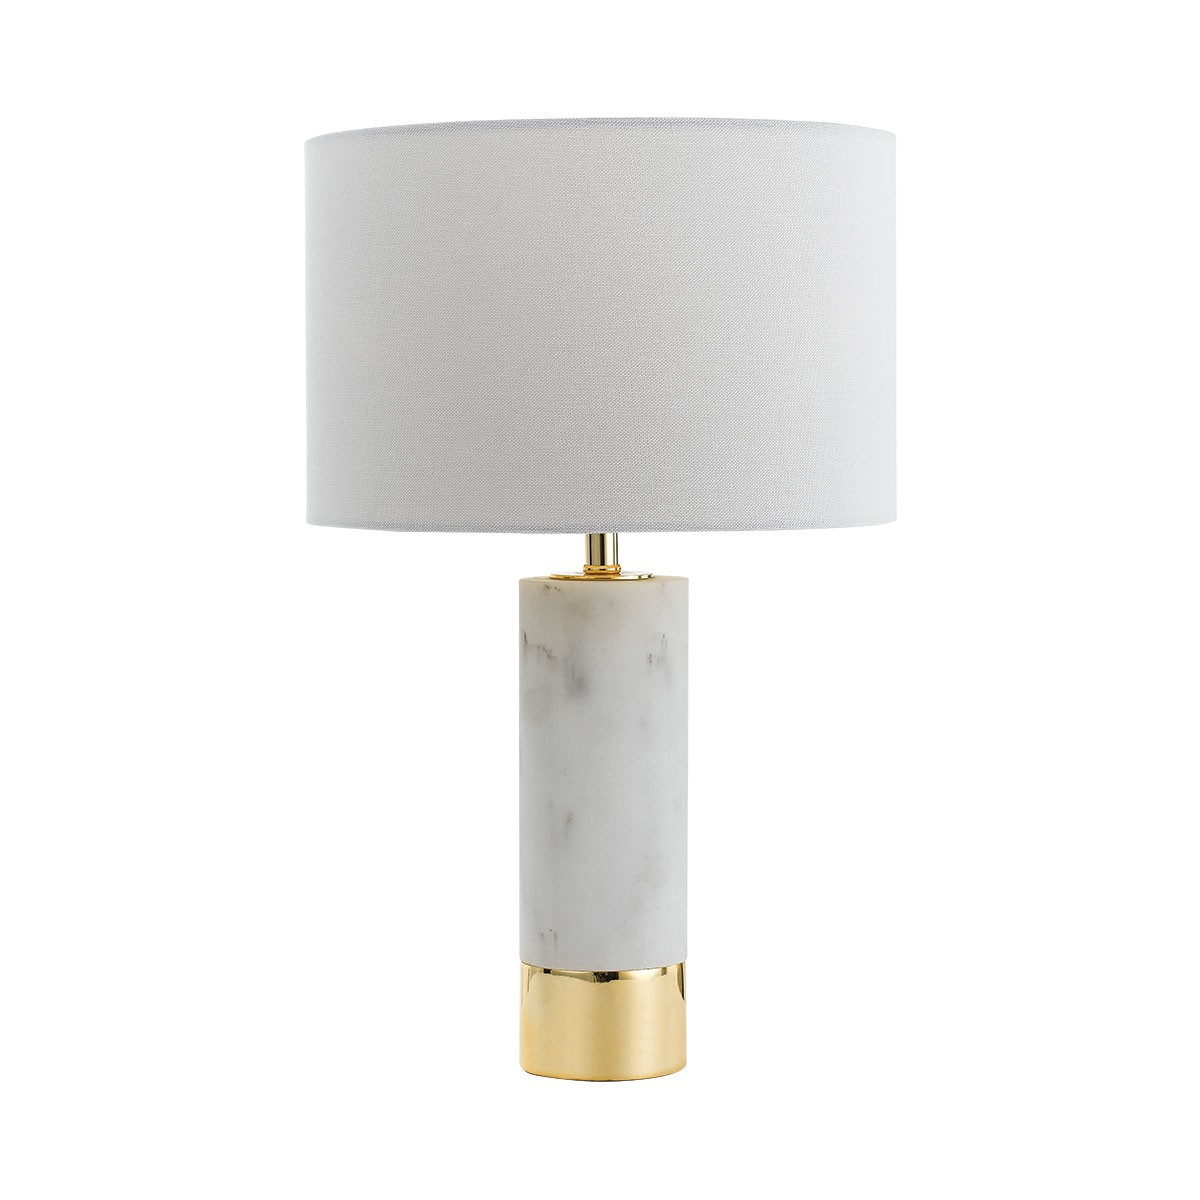 Toledo Ceramic Base Table Lamp - Gold